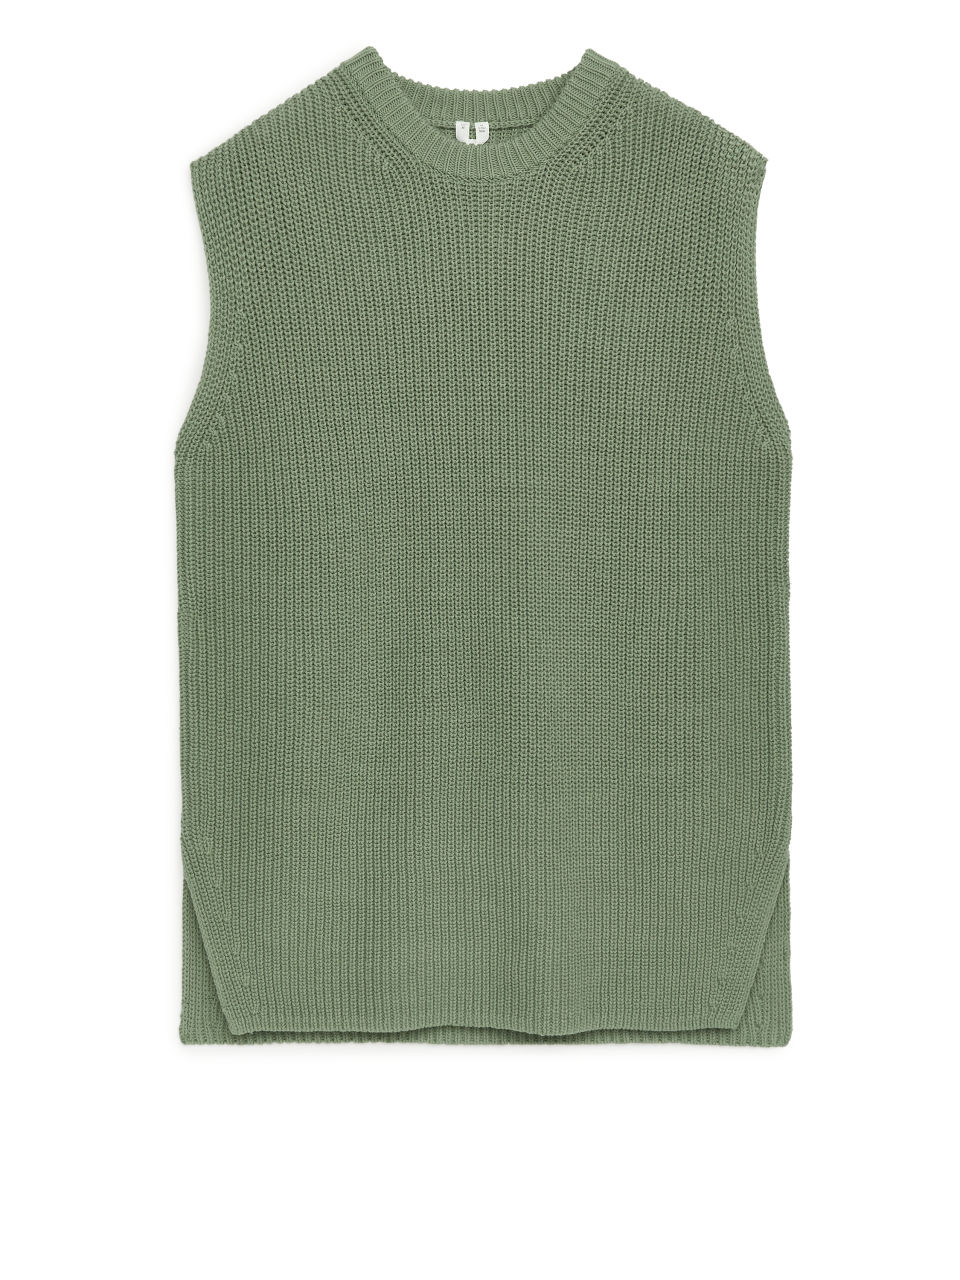 Knitted Vest - Green